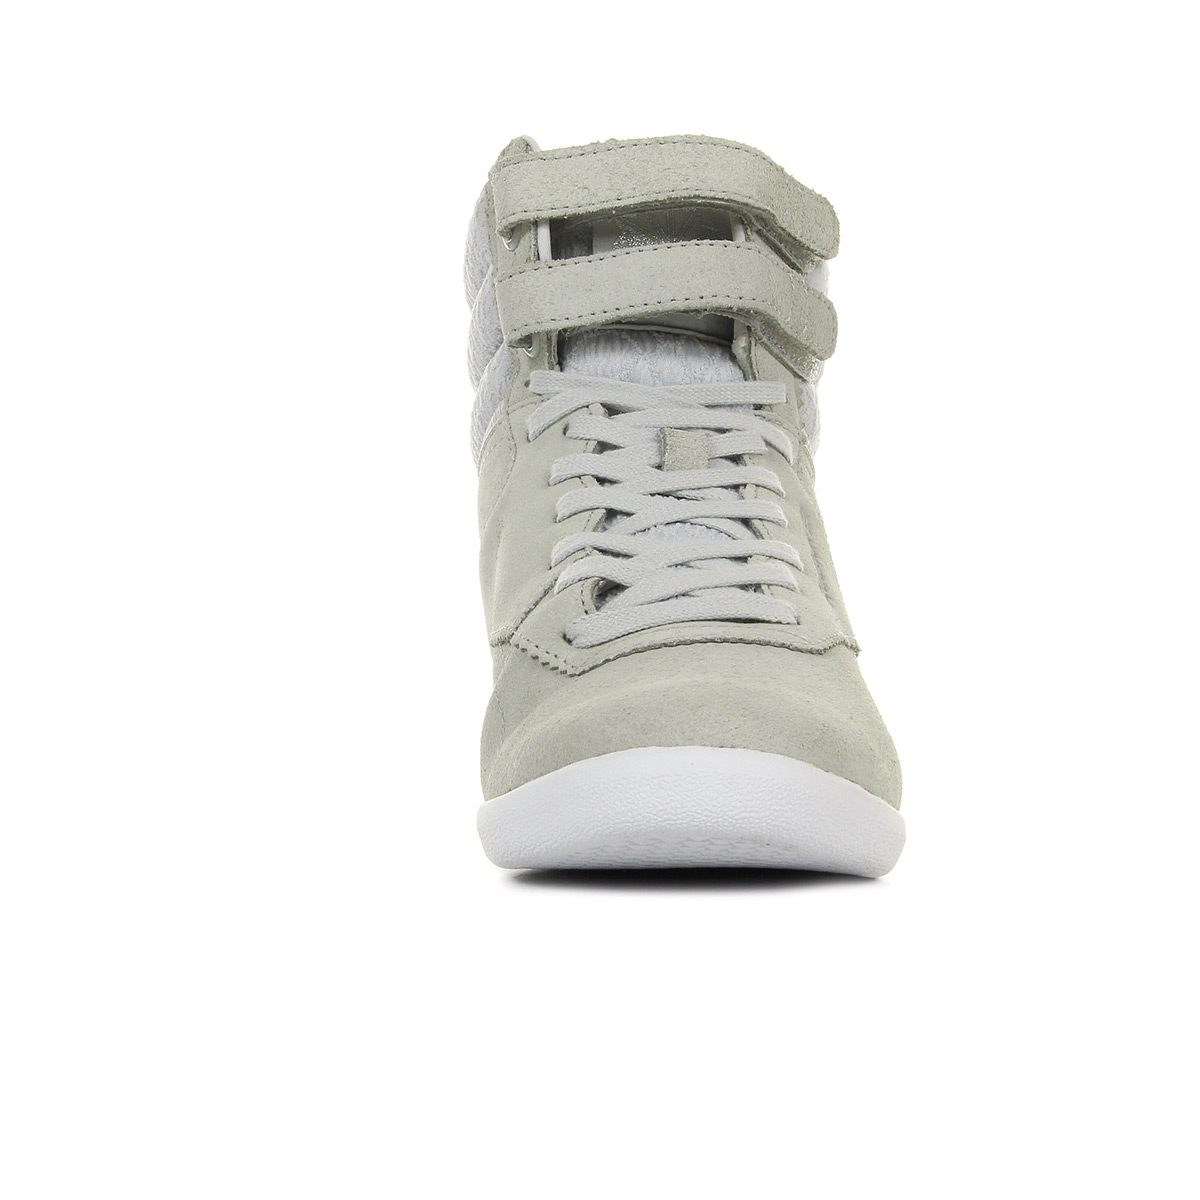 Reebok F/S Hi Int Wedge Night M45373, Baskets mode femme